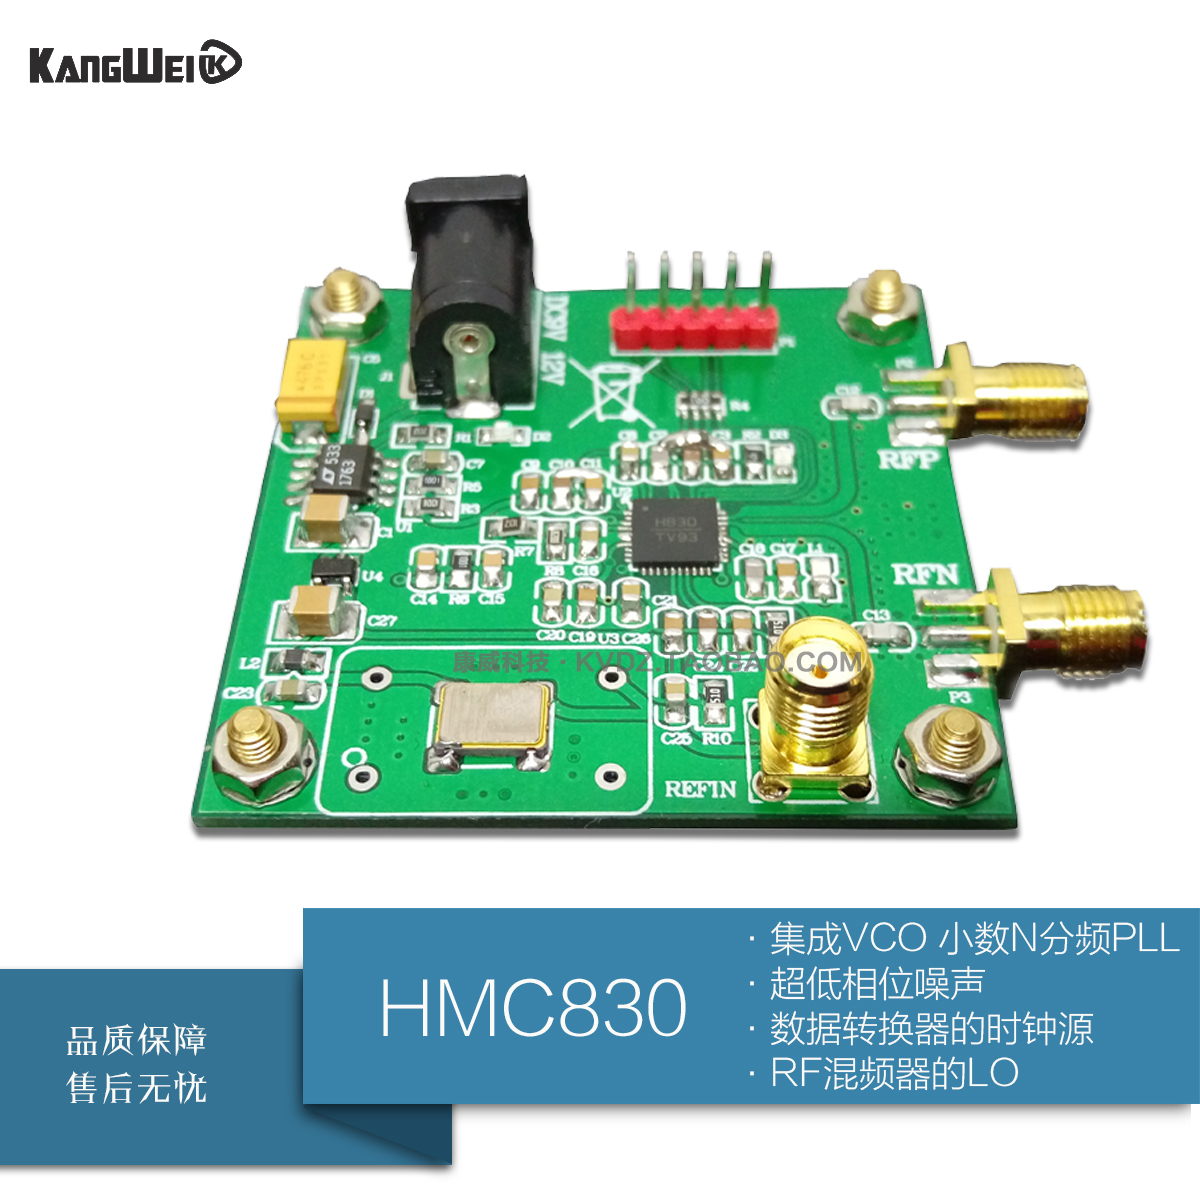 HMC830 Module Phase Locked Loop PLL Frequency Source Signal Generator Integrated VCO Fractional N Frequency Division optimal pll loop filter design for mobile wimax via lmi